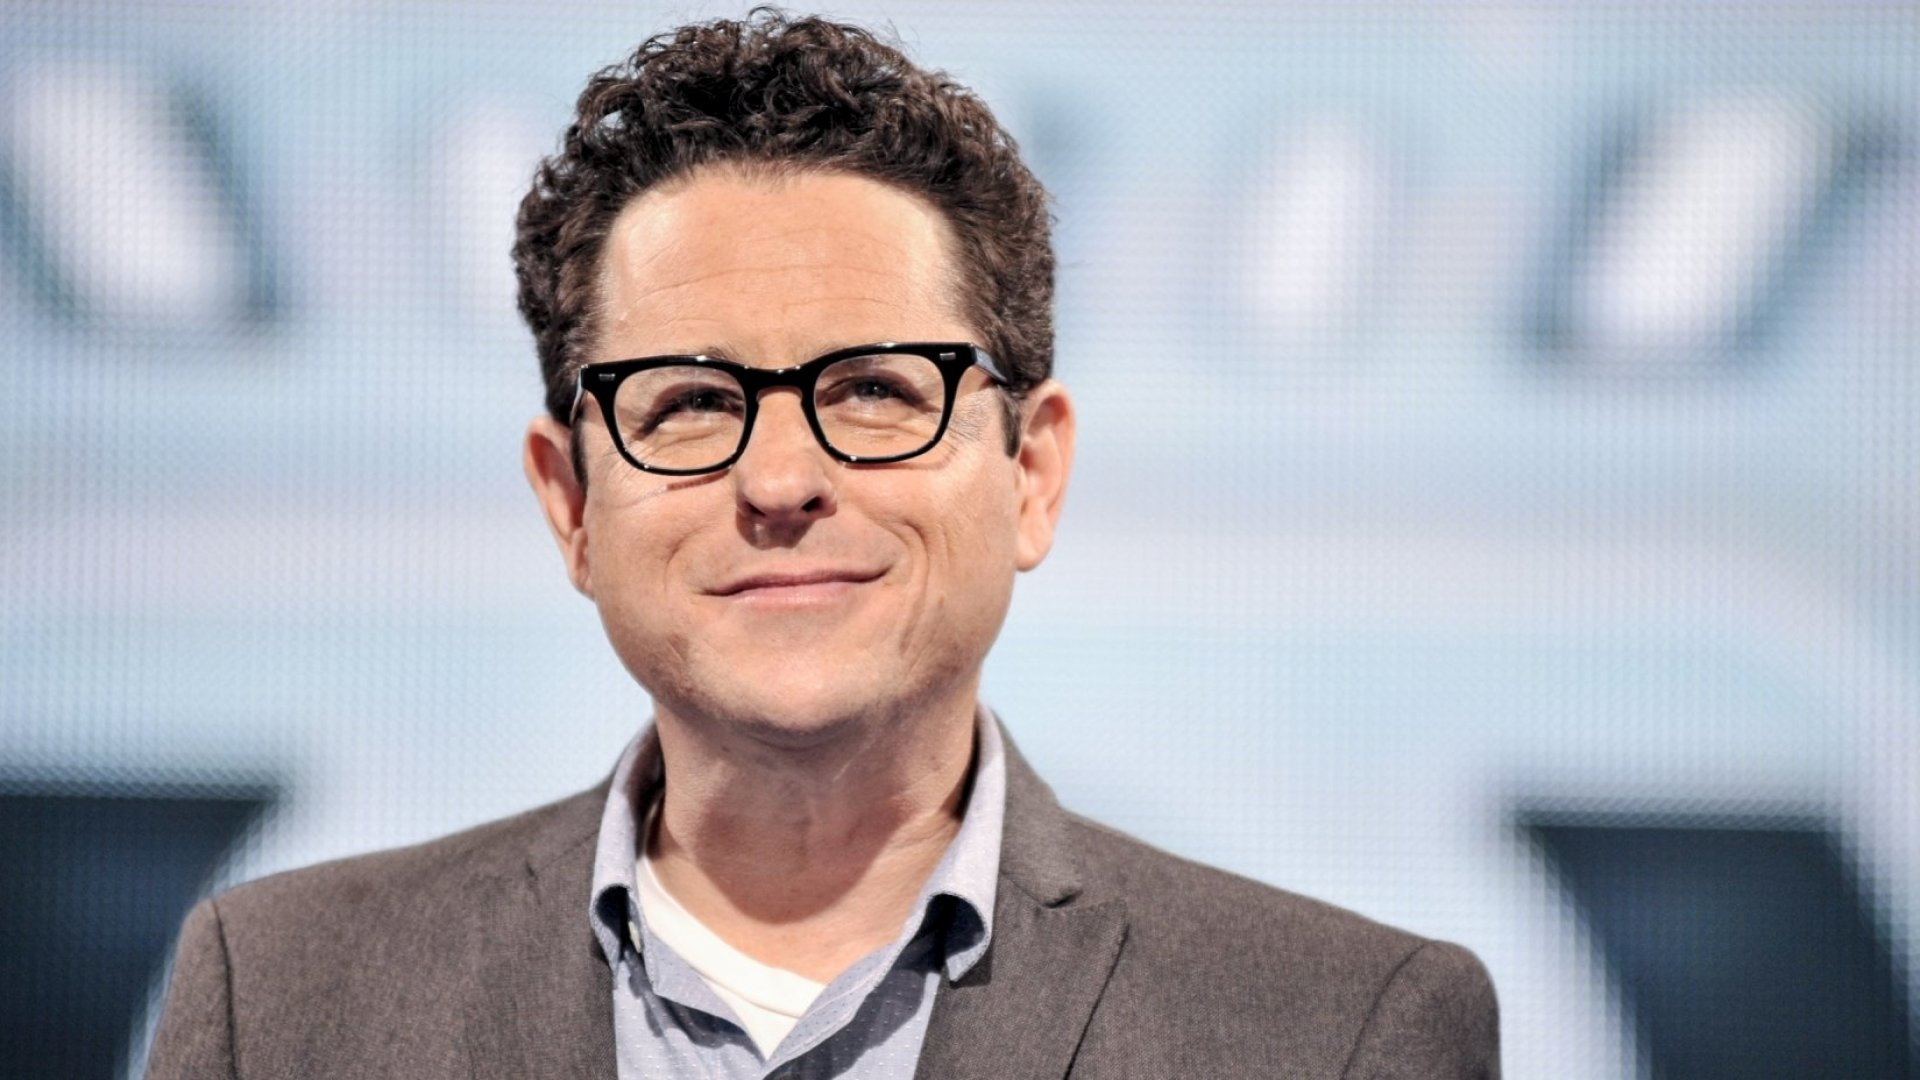 'Star Wars: The Force Awakens,' director J.J. Abrams.